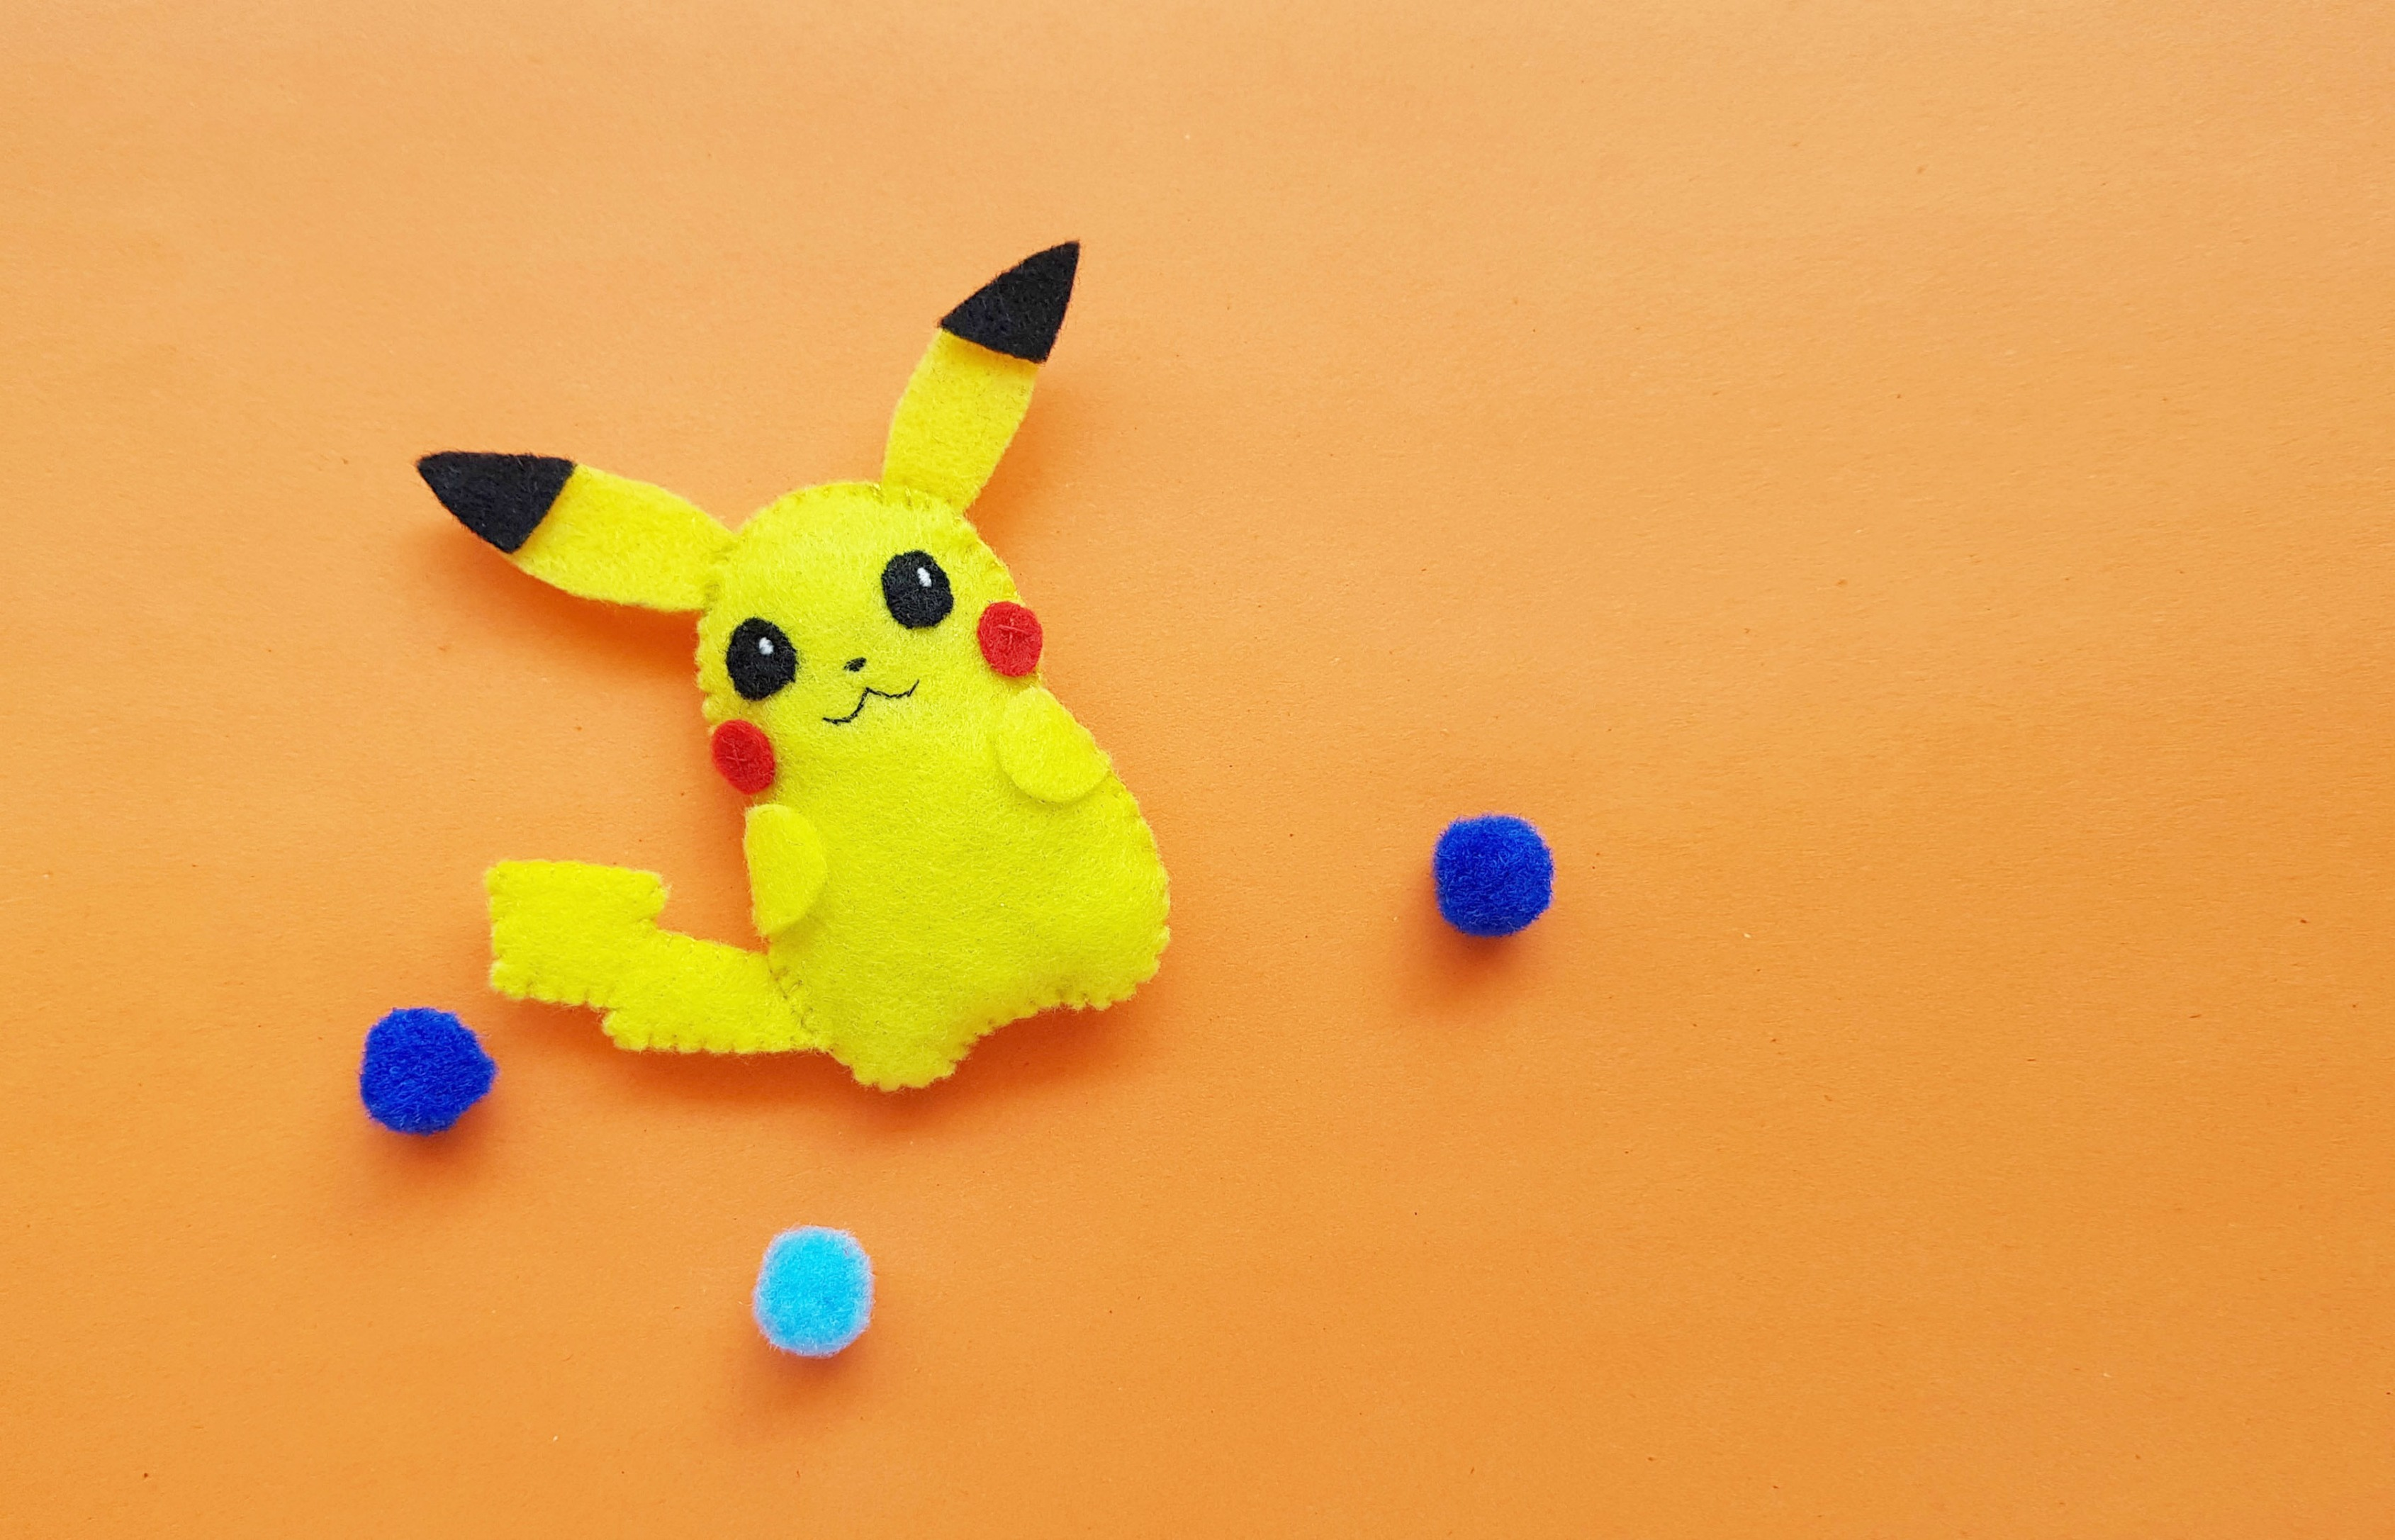 The finished product of Pikachu in all his glory against an orange background.